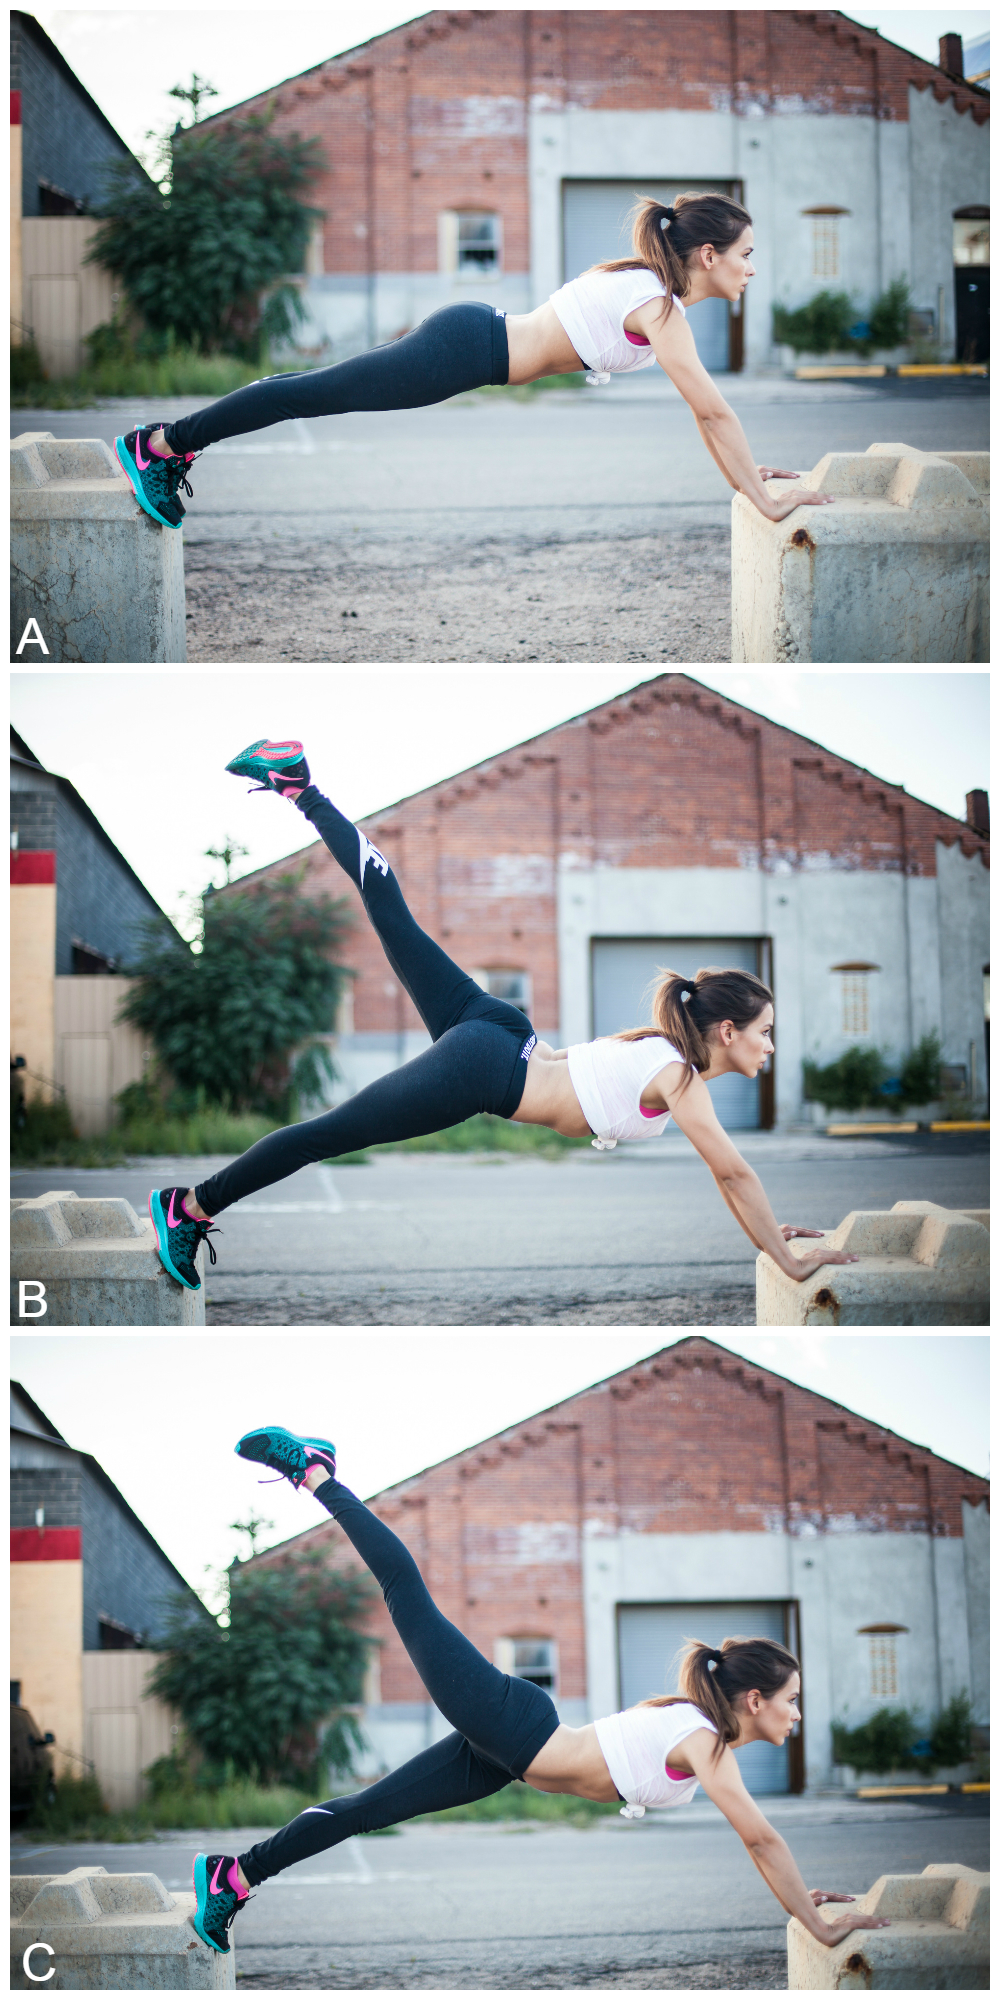 Pier 30 Plank - @FitWithMeShelby